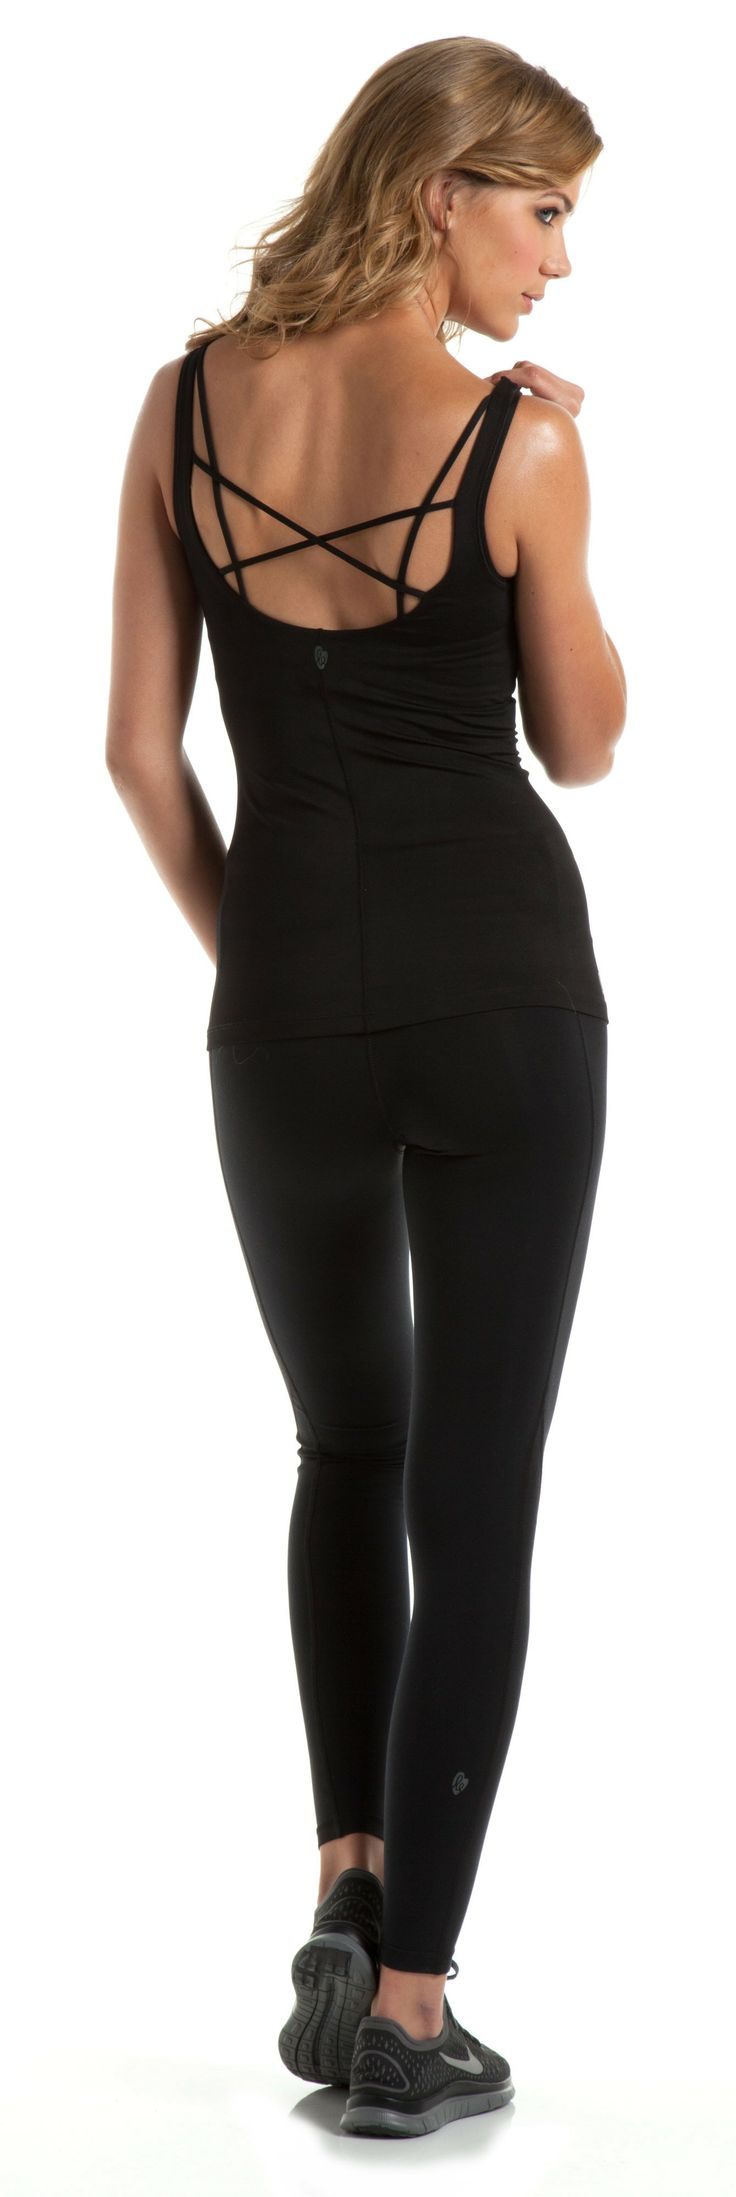 Black swan workout outfit. Love the back